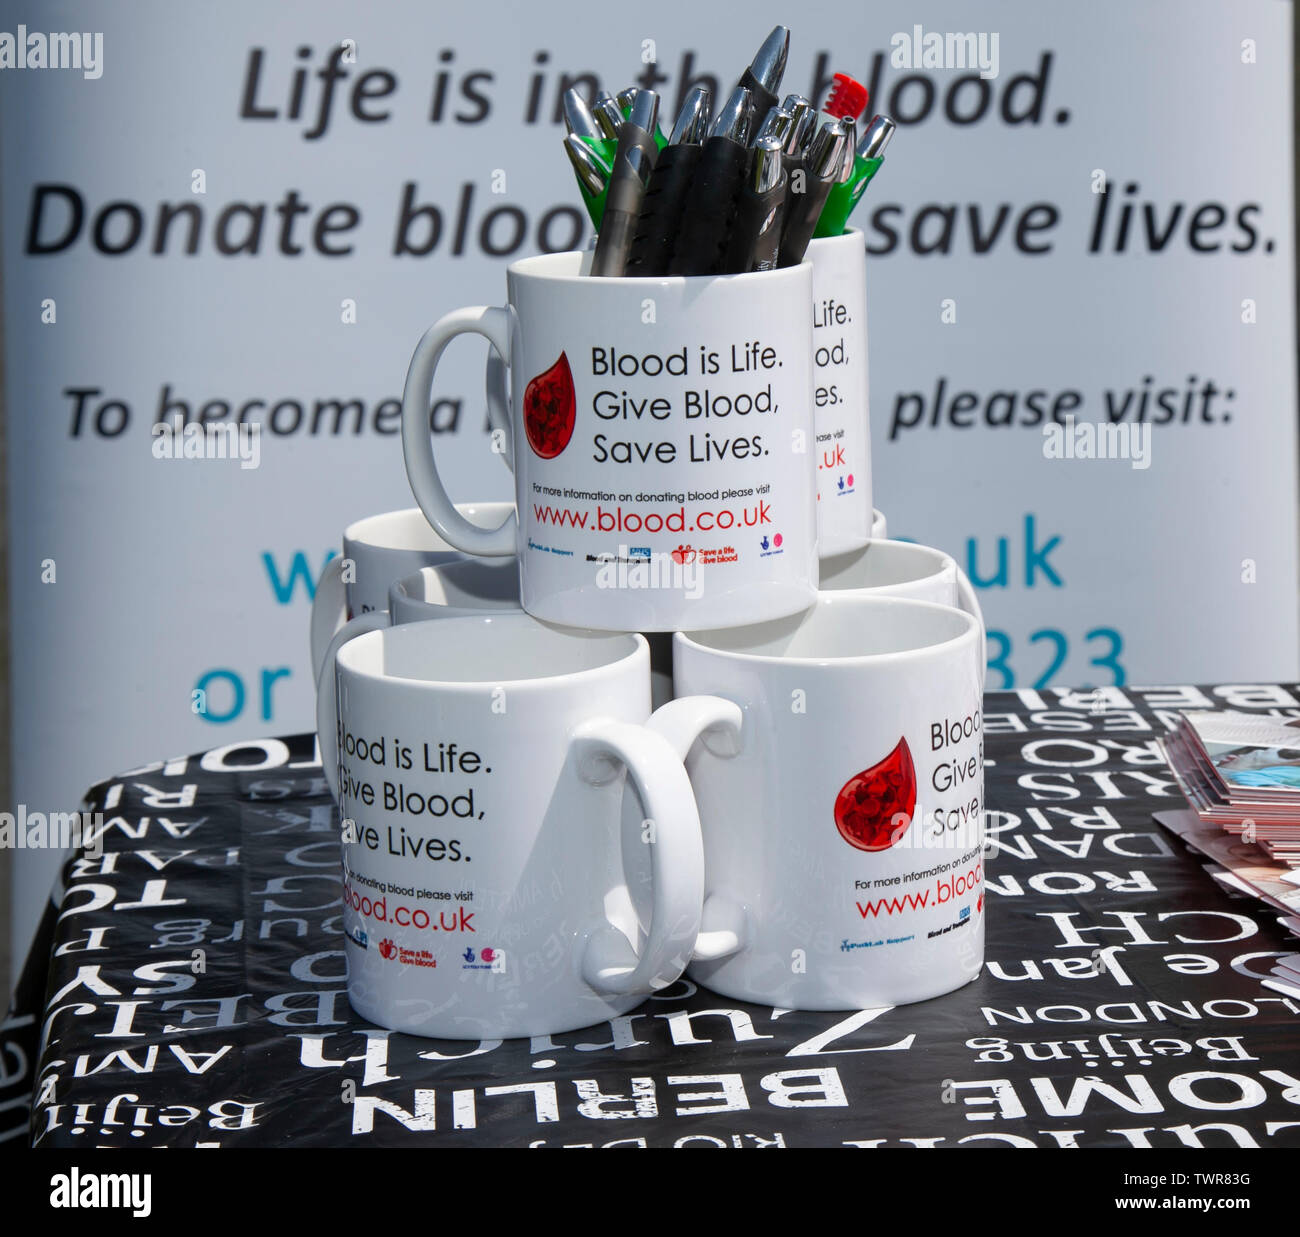 Donate Blood to save lifes, Cups and merchandise at Africa Oye, Sefton Park, Liverpool, UK - Stock Image